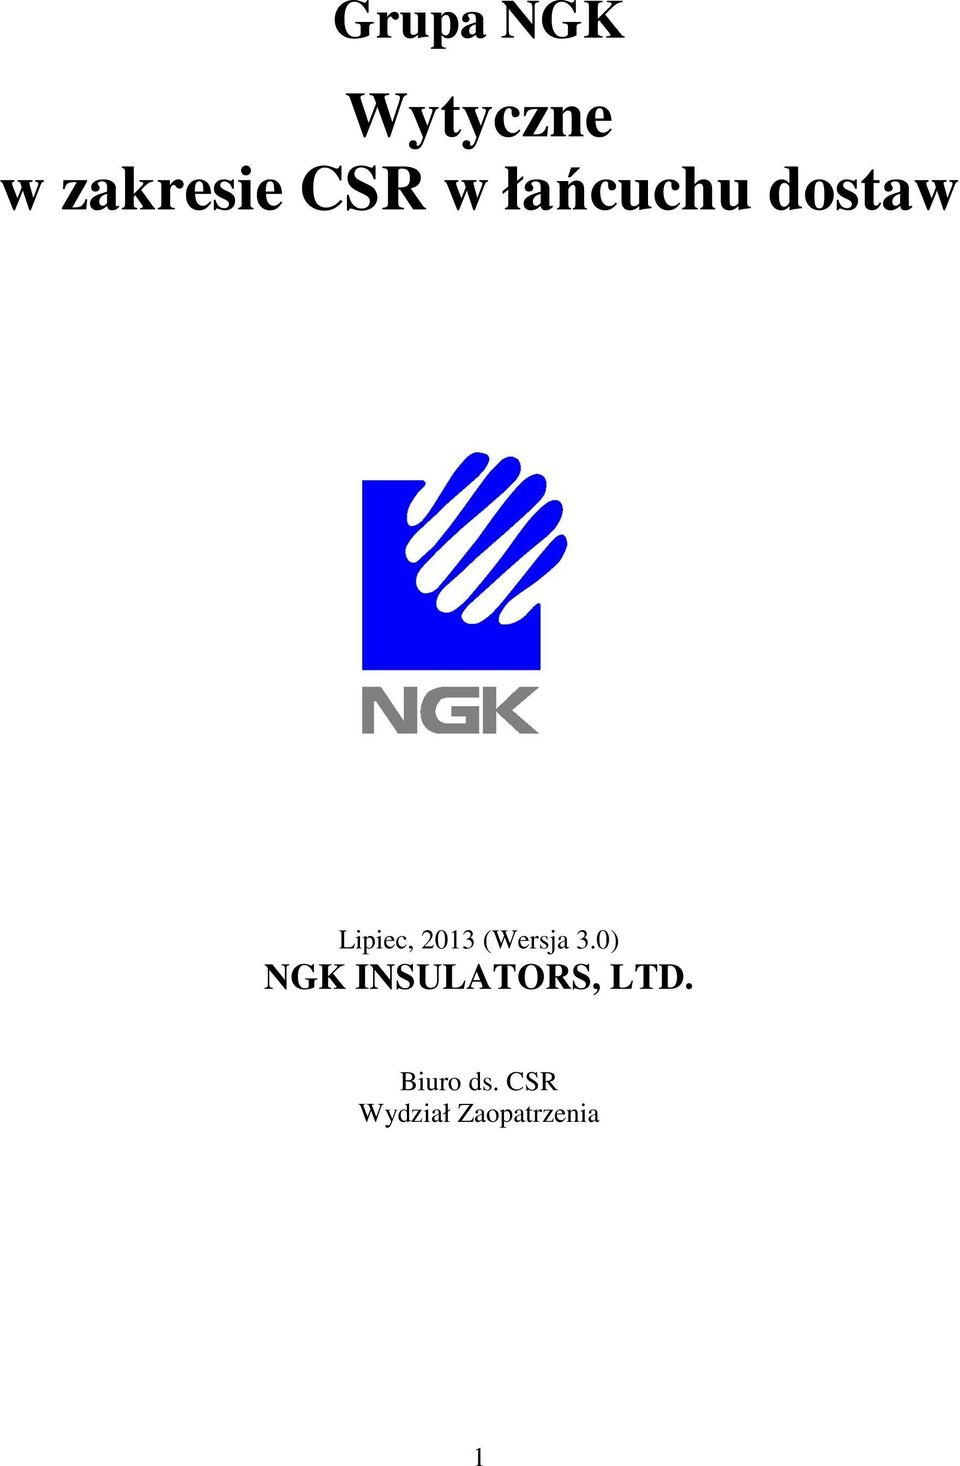 (Wersja 3.0) NGK INSULATORS, LTD.